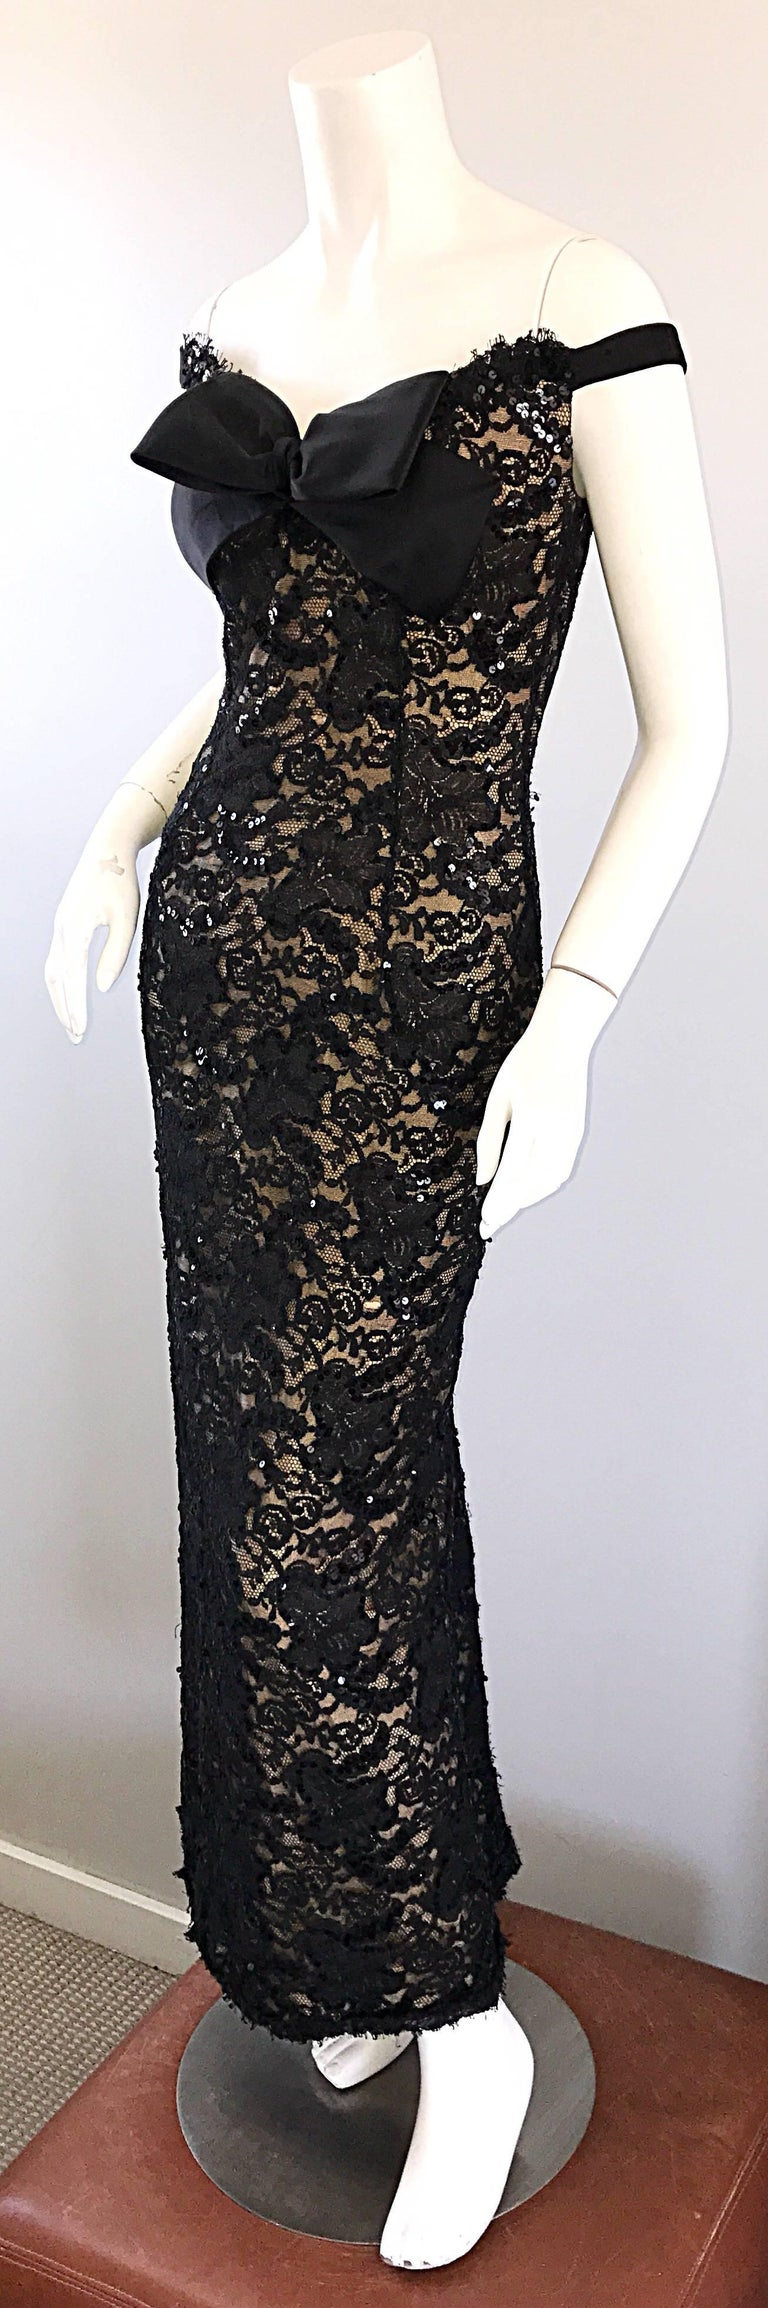 Vintage Bob Mackie Black Lace Sequin Size 8 1990s 90s Evening Off Shoulder Gown  For Sale 4